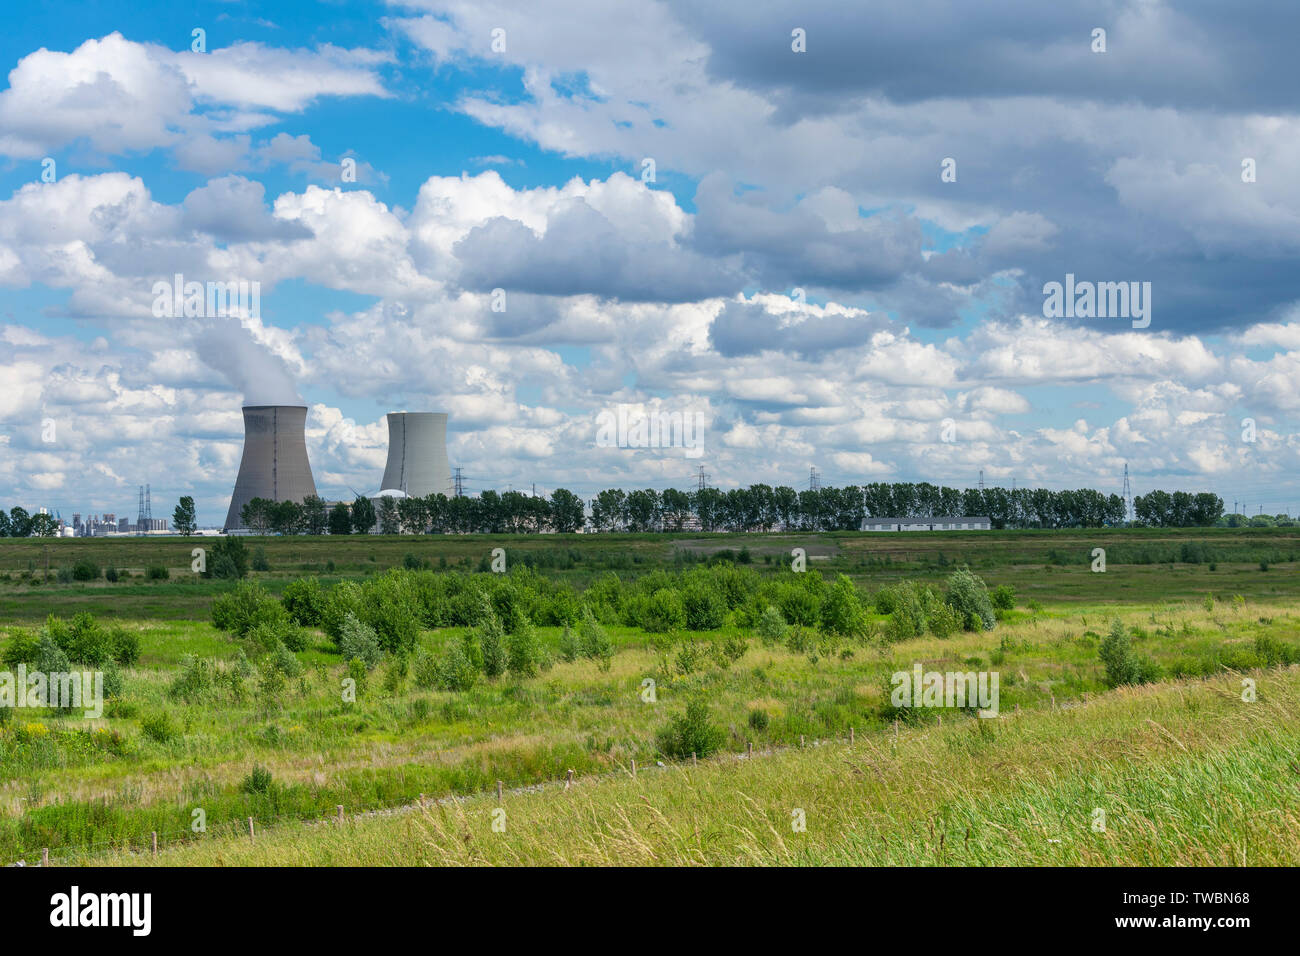 Beautiful landscape with the port of Antwerp and the nuclear power plant of Doel - Stock Image